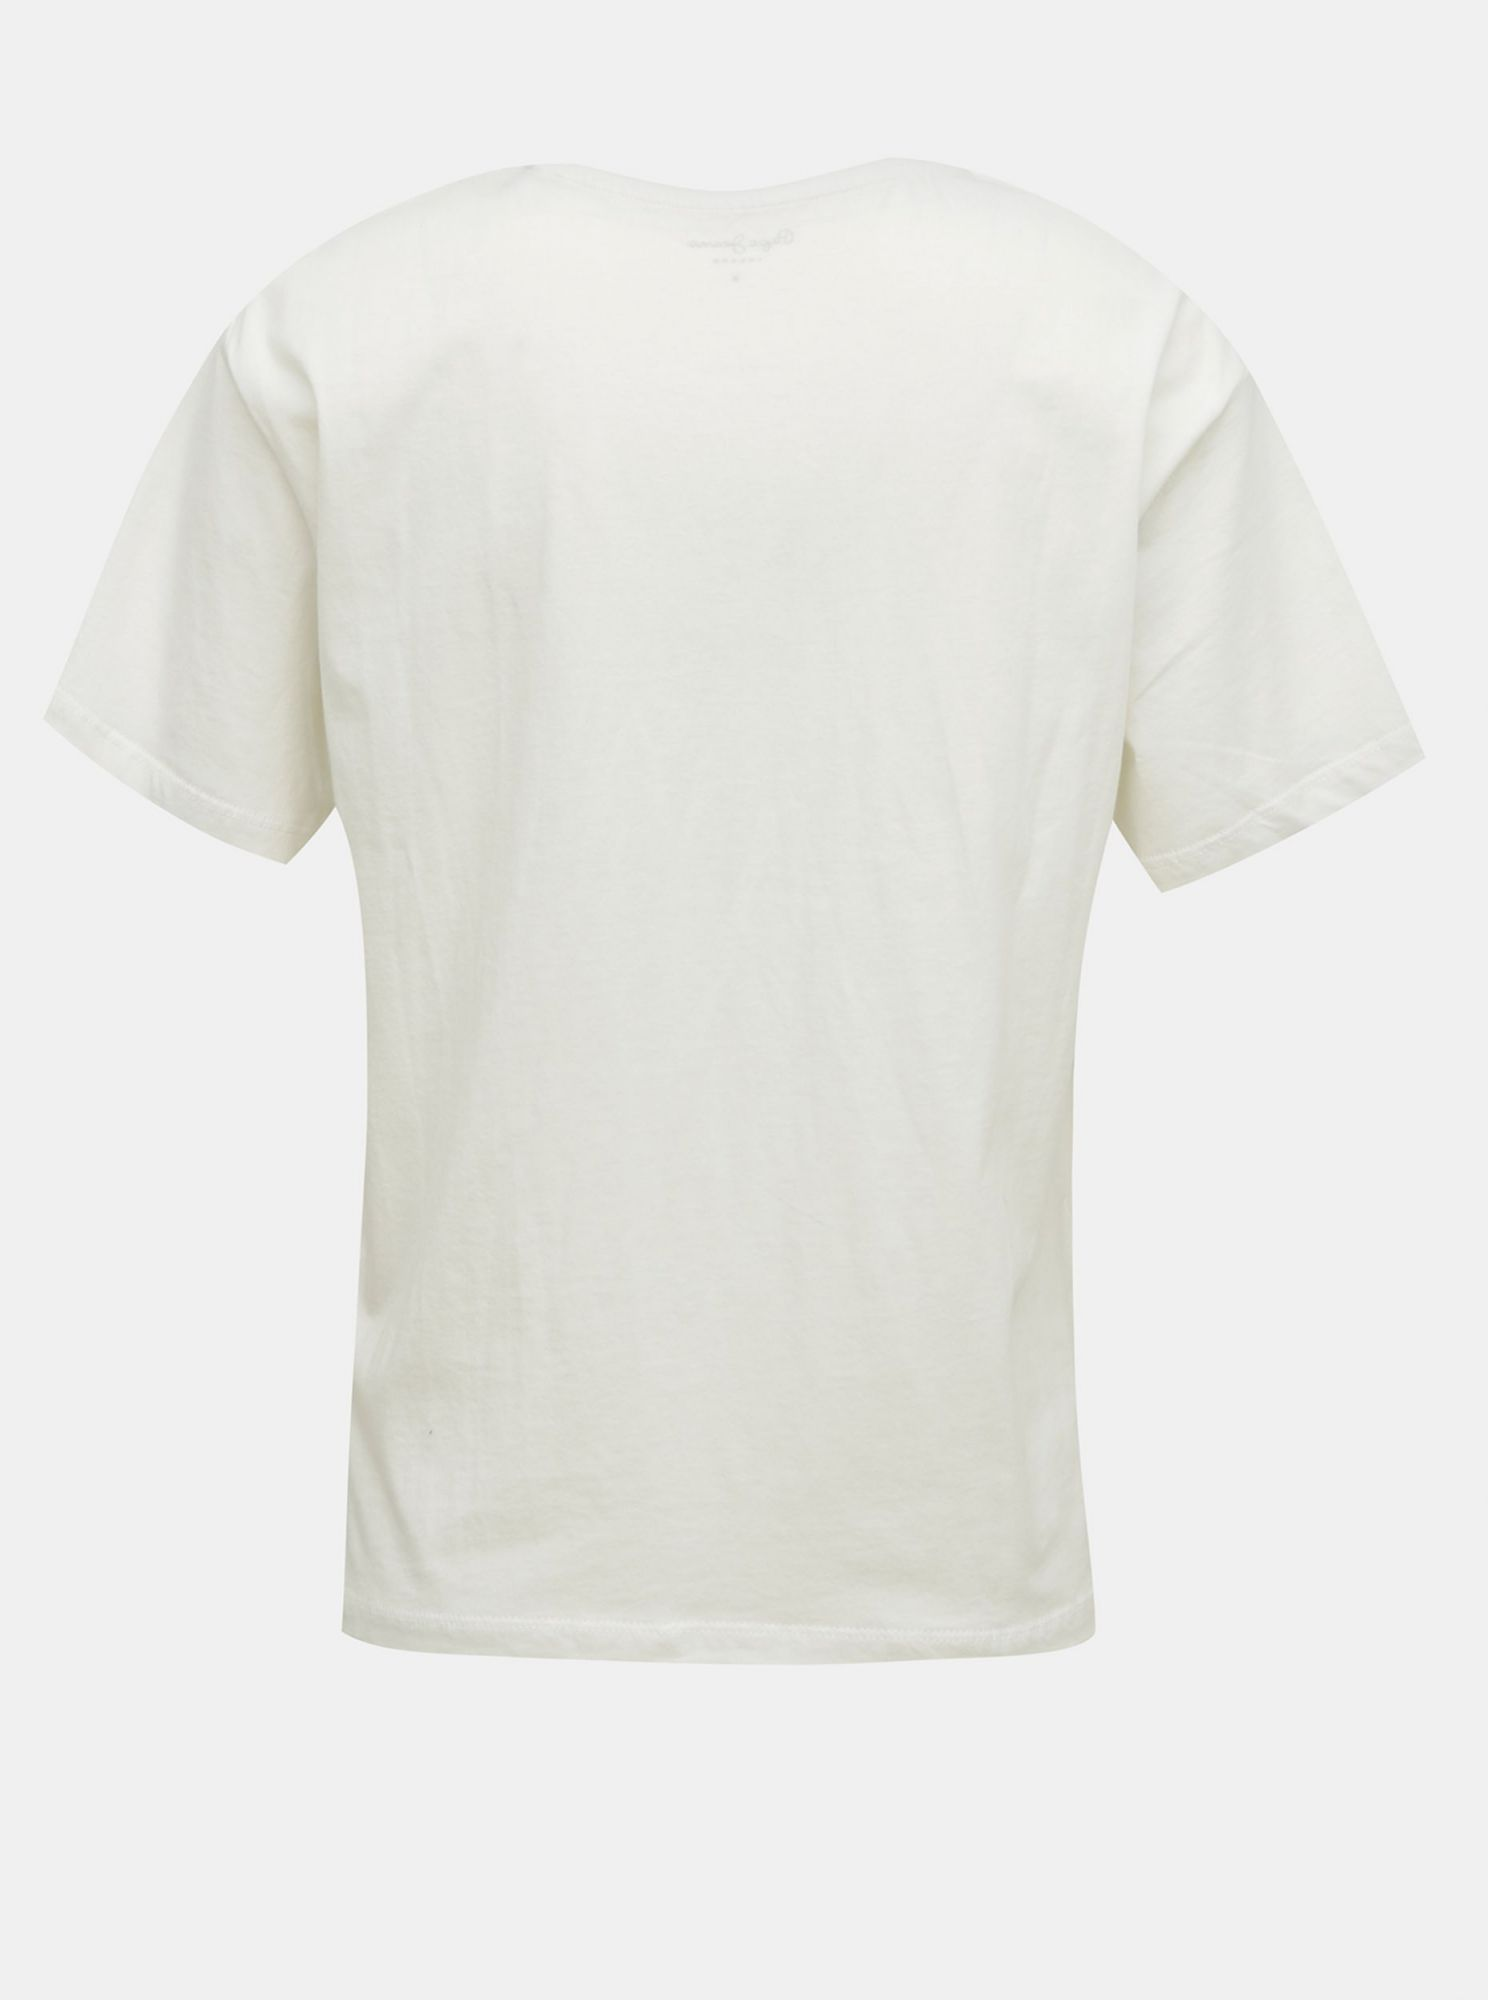 Pepe Jeans white T-shirt with print